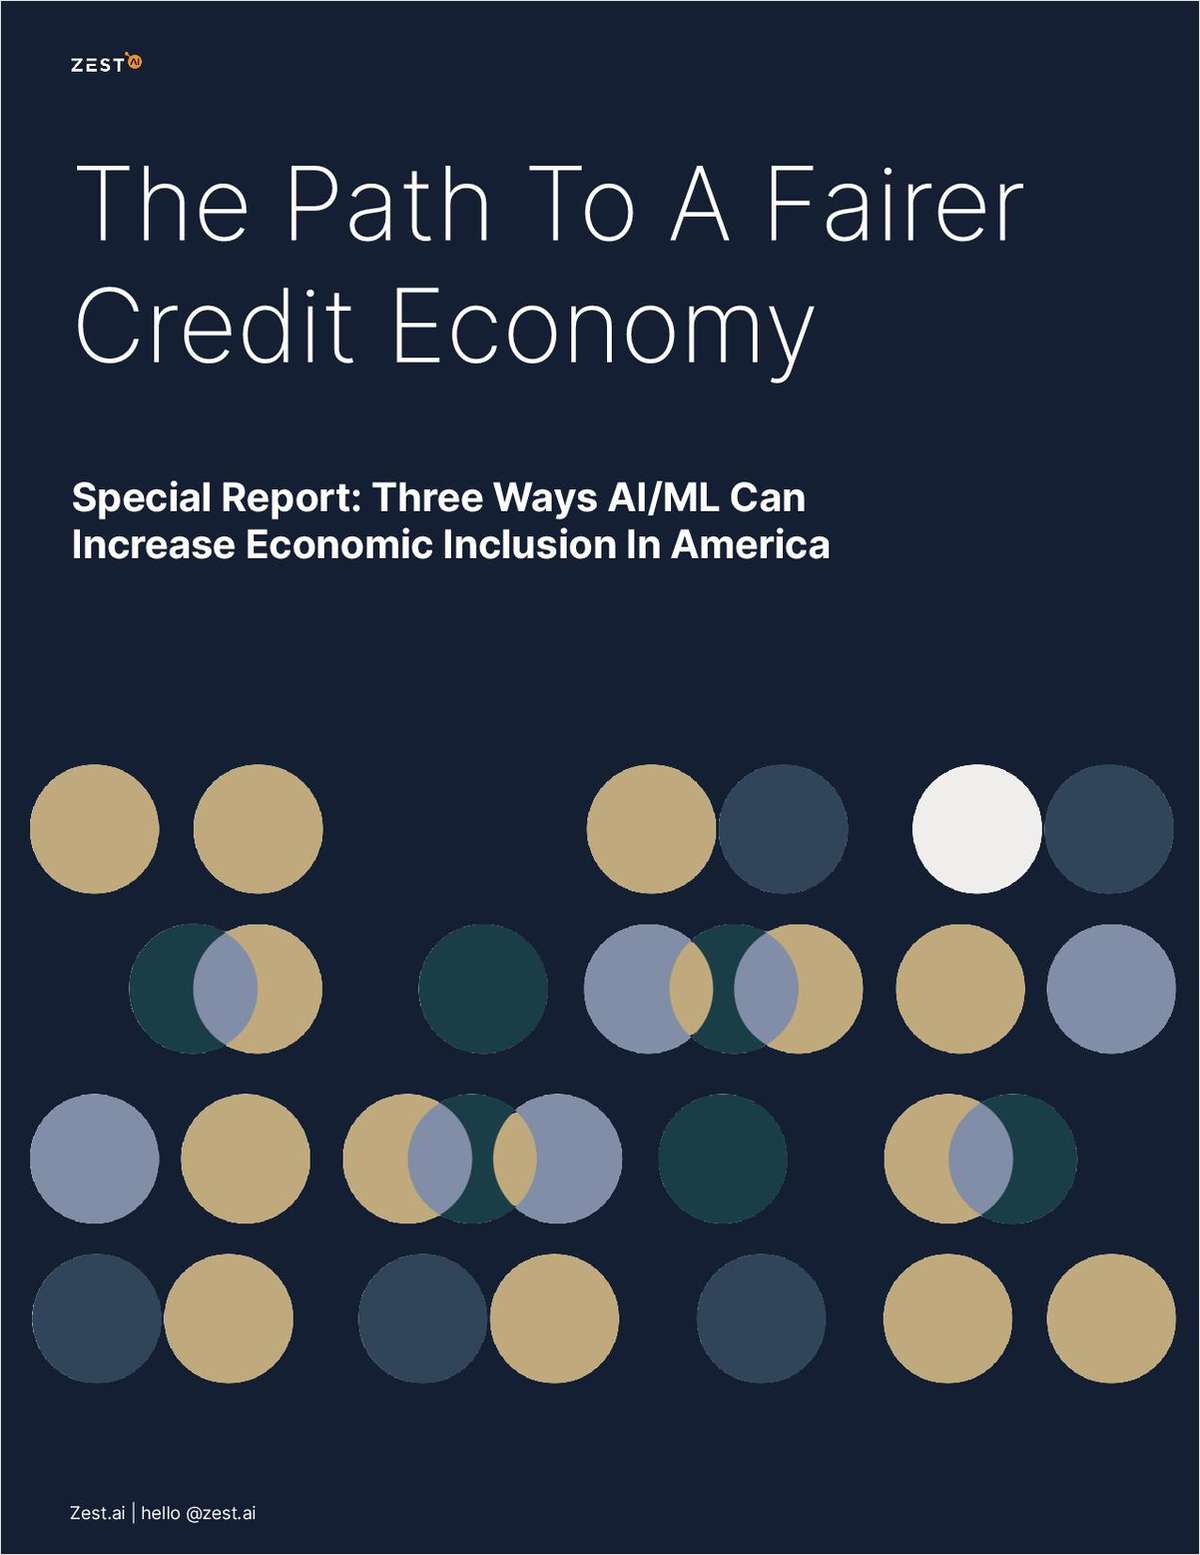 Special Report: The Path to a Fairer Credit Economy